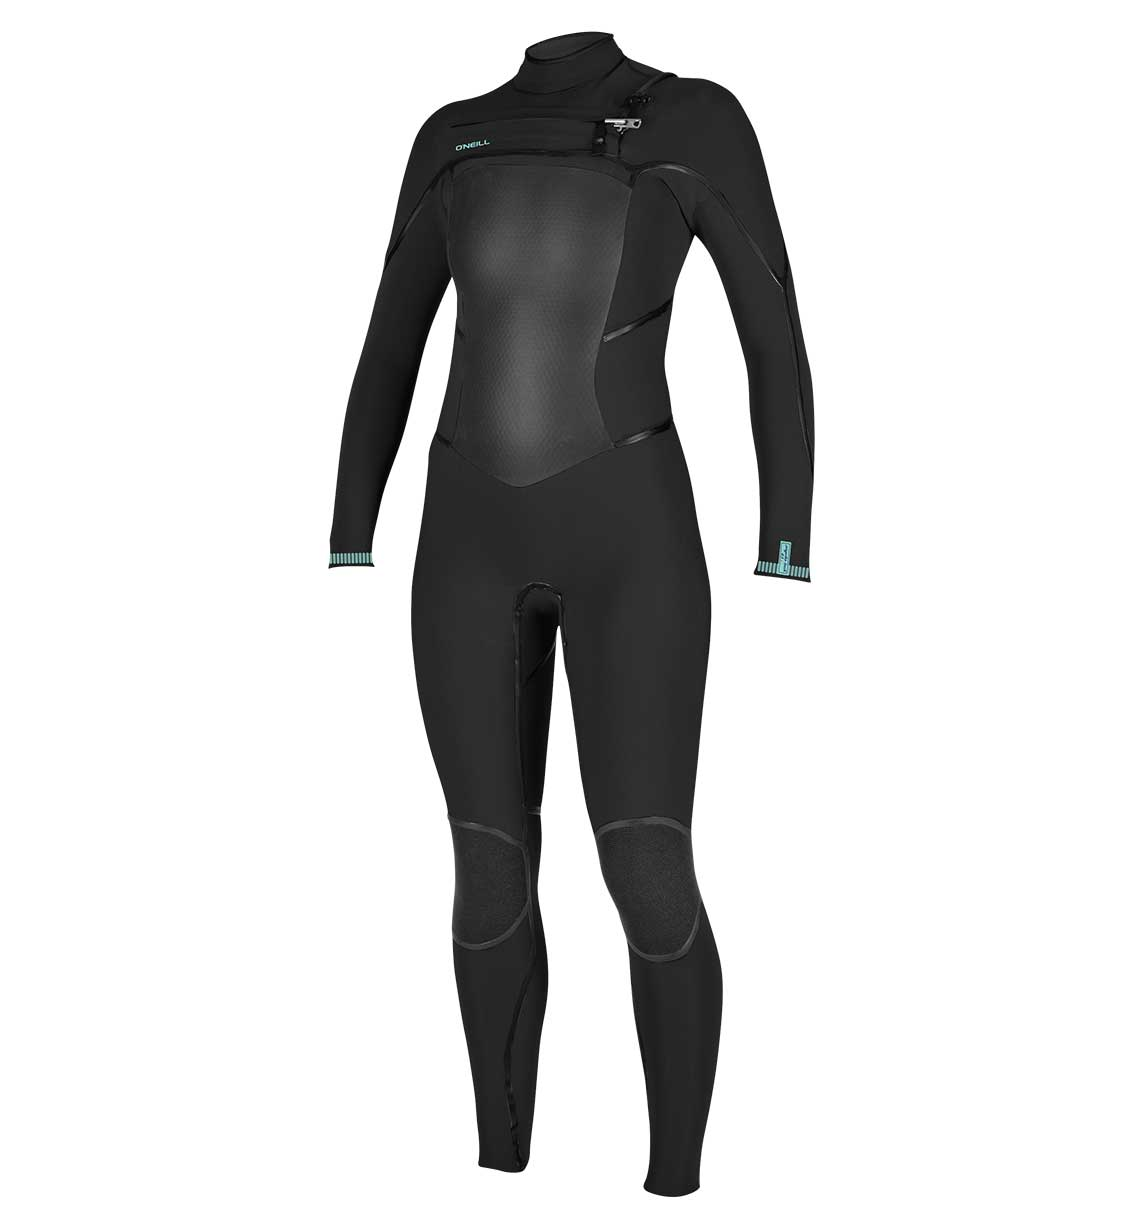 O'Neill Women's Pyscho Tech Chest Zip 4/3 TB3 Wetsuit